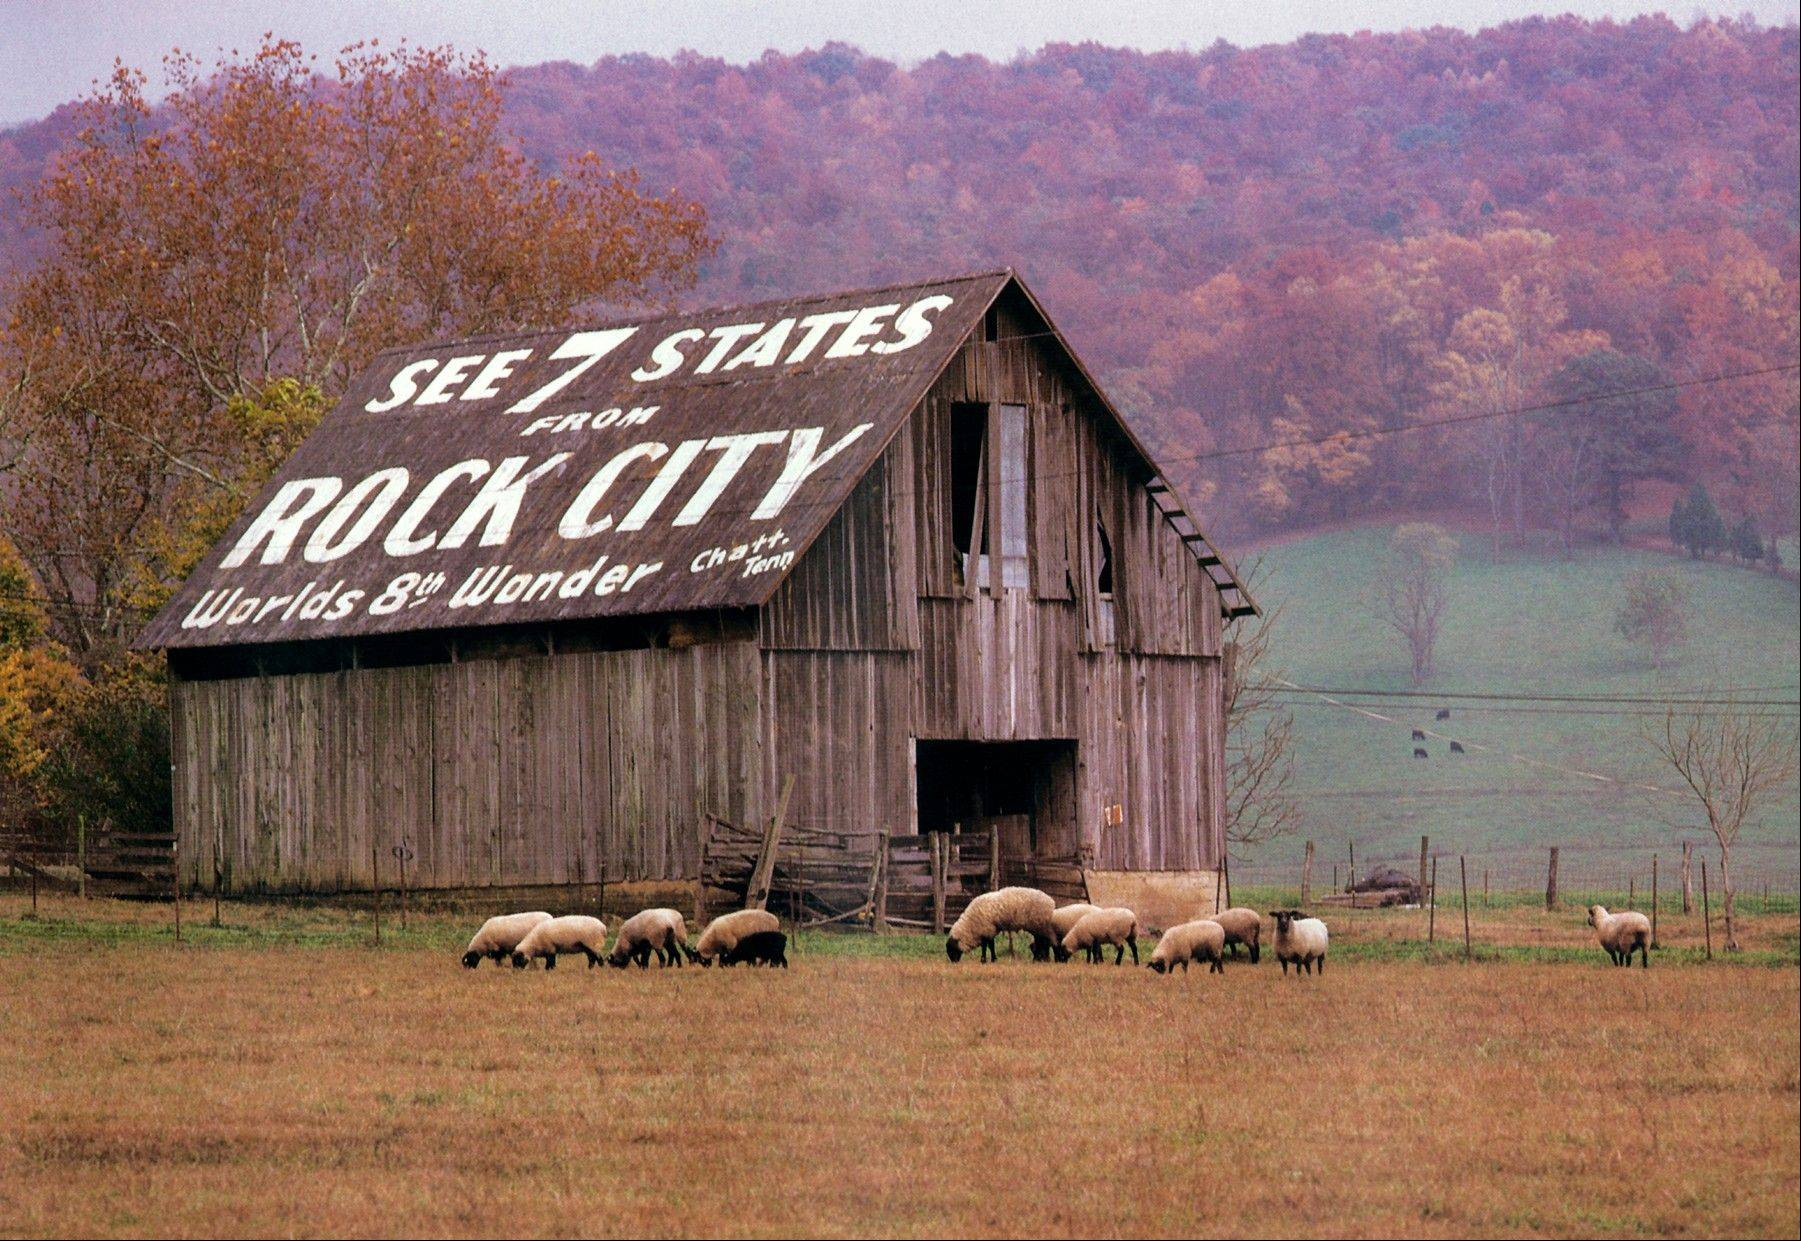 An advertisement for Rock City painted on the side of a barn in Cumberland County, Tenn., in 1996 is one of 900 barn ads originally painted by Clark Byers beginning in the 1930s.